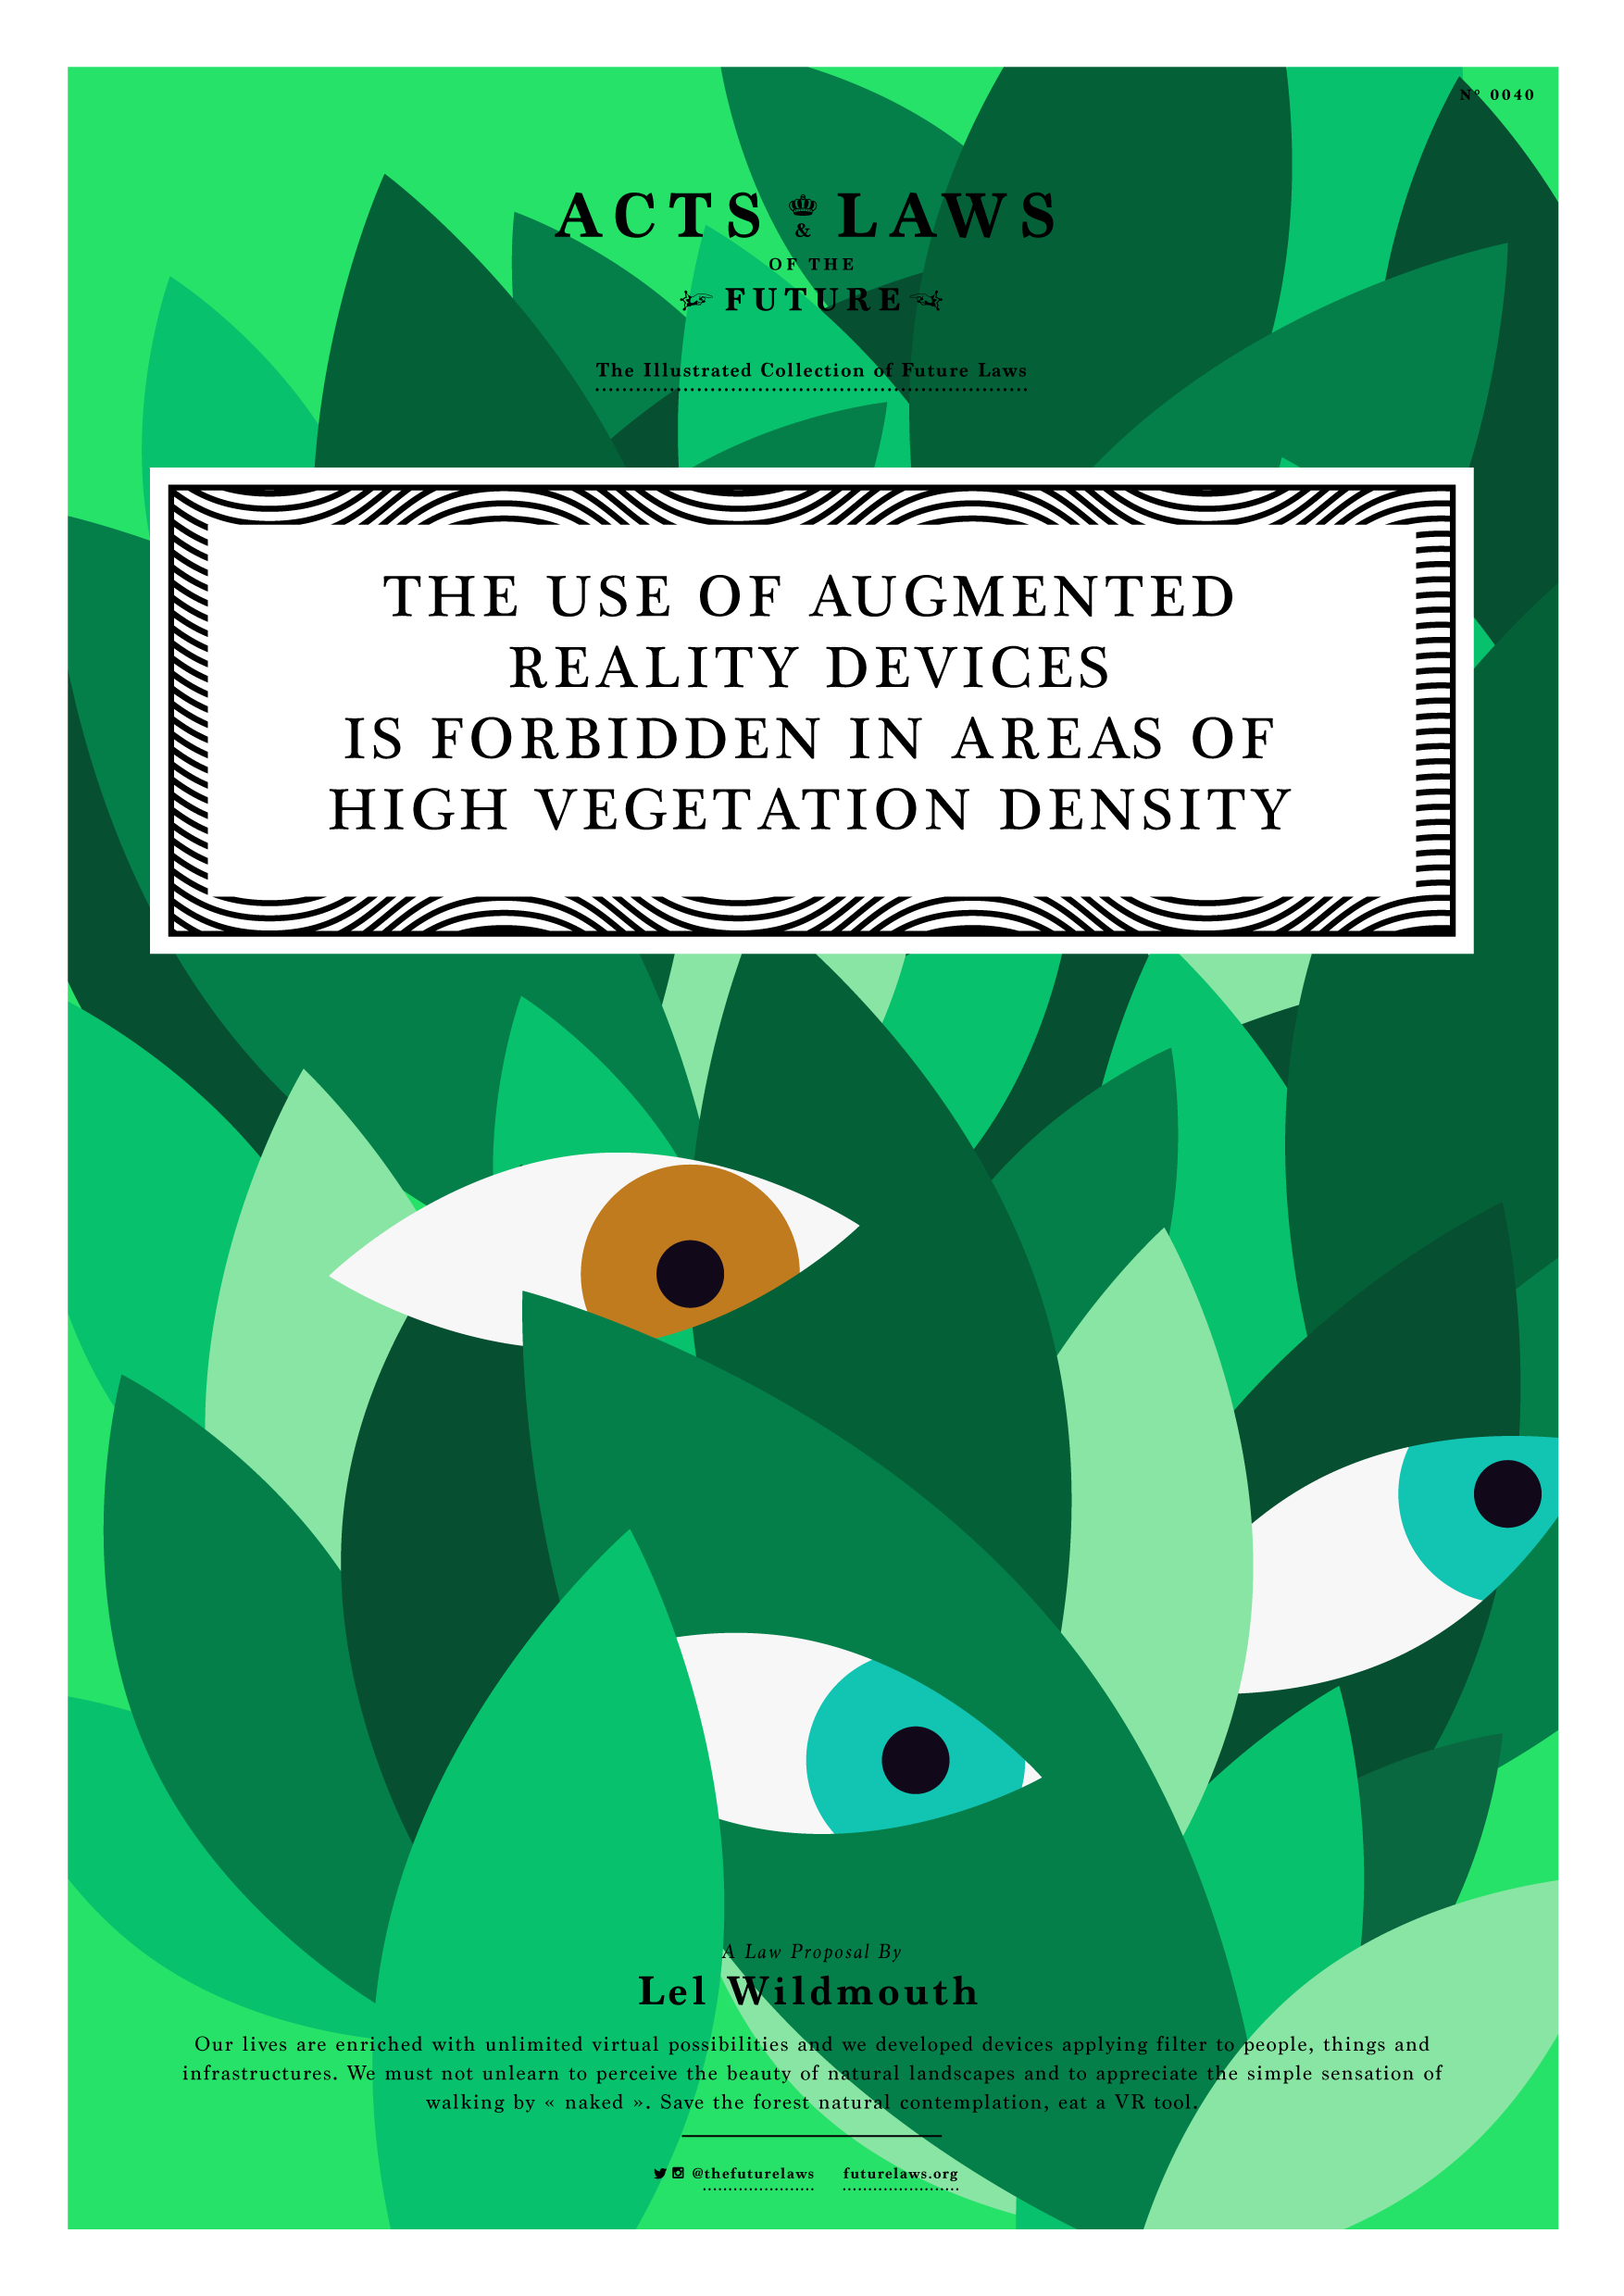 THE USE OF AUGMENTED REALITY DEVICES IS FORBIDDEN IN AREAS OF HIGH VEGETATION DENSITY